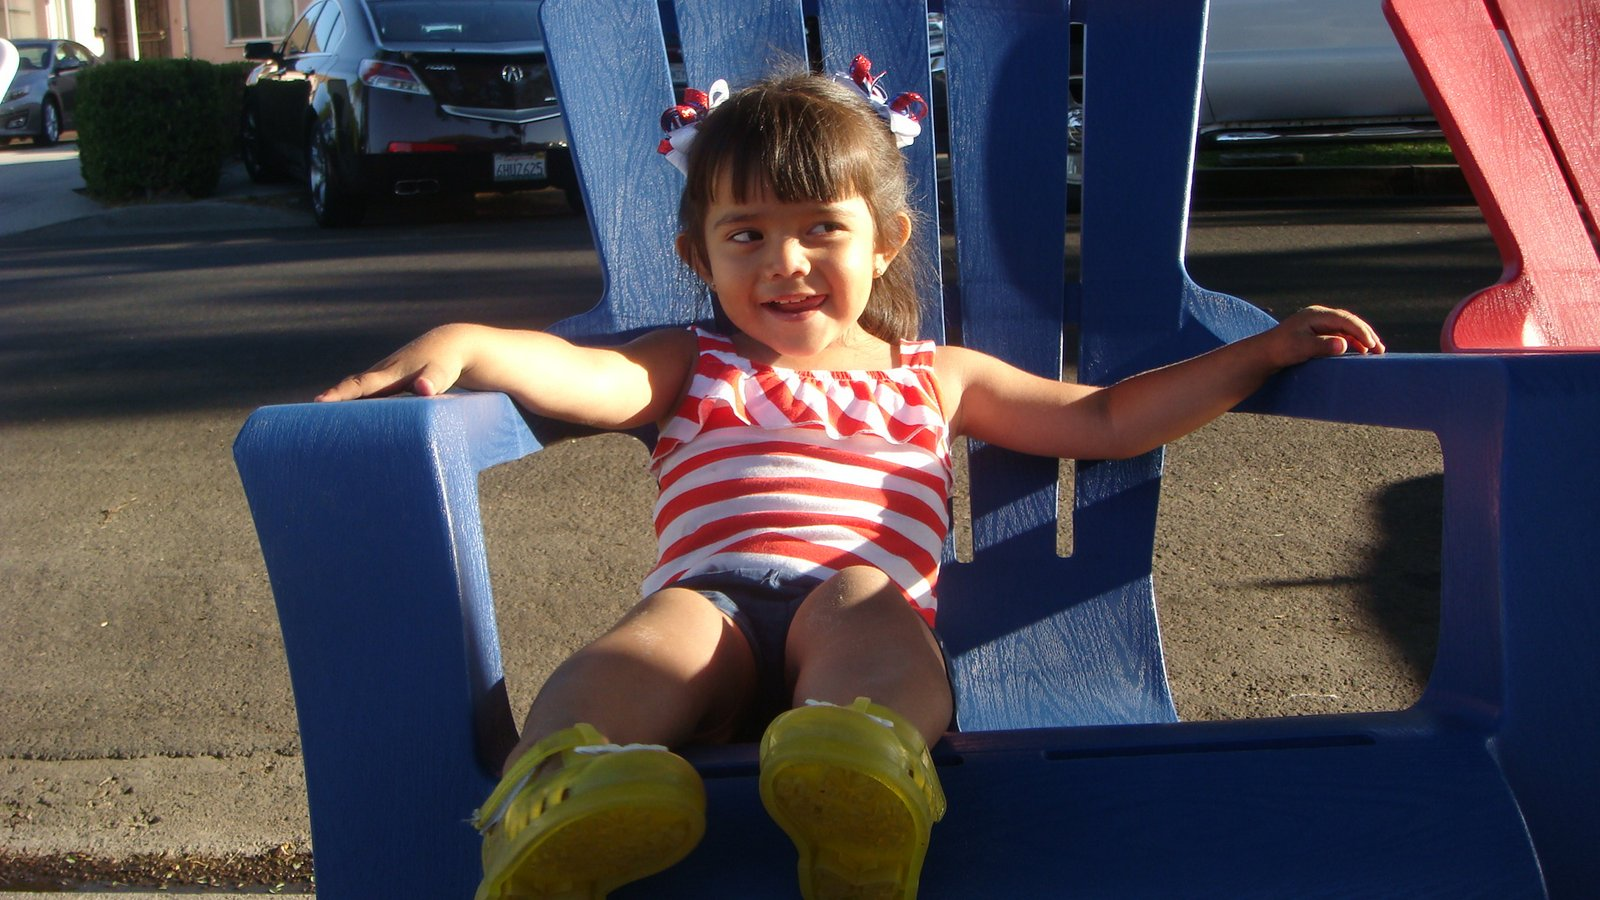 an almost 3-year-old girl in a red-and-white striped top and blue shorts sitting in a big, plastic blue chair and smiling.